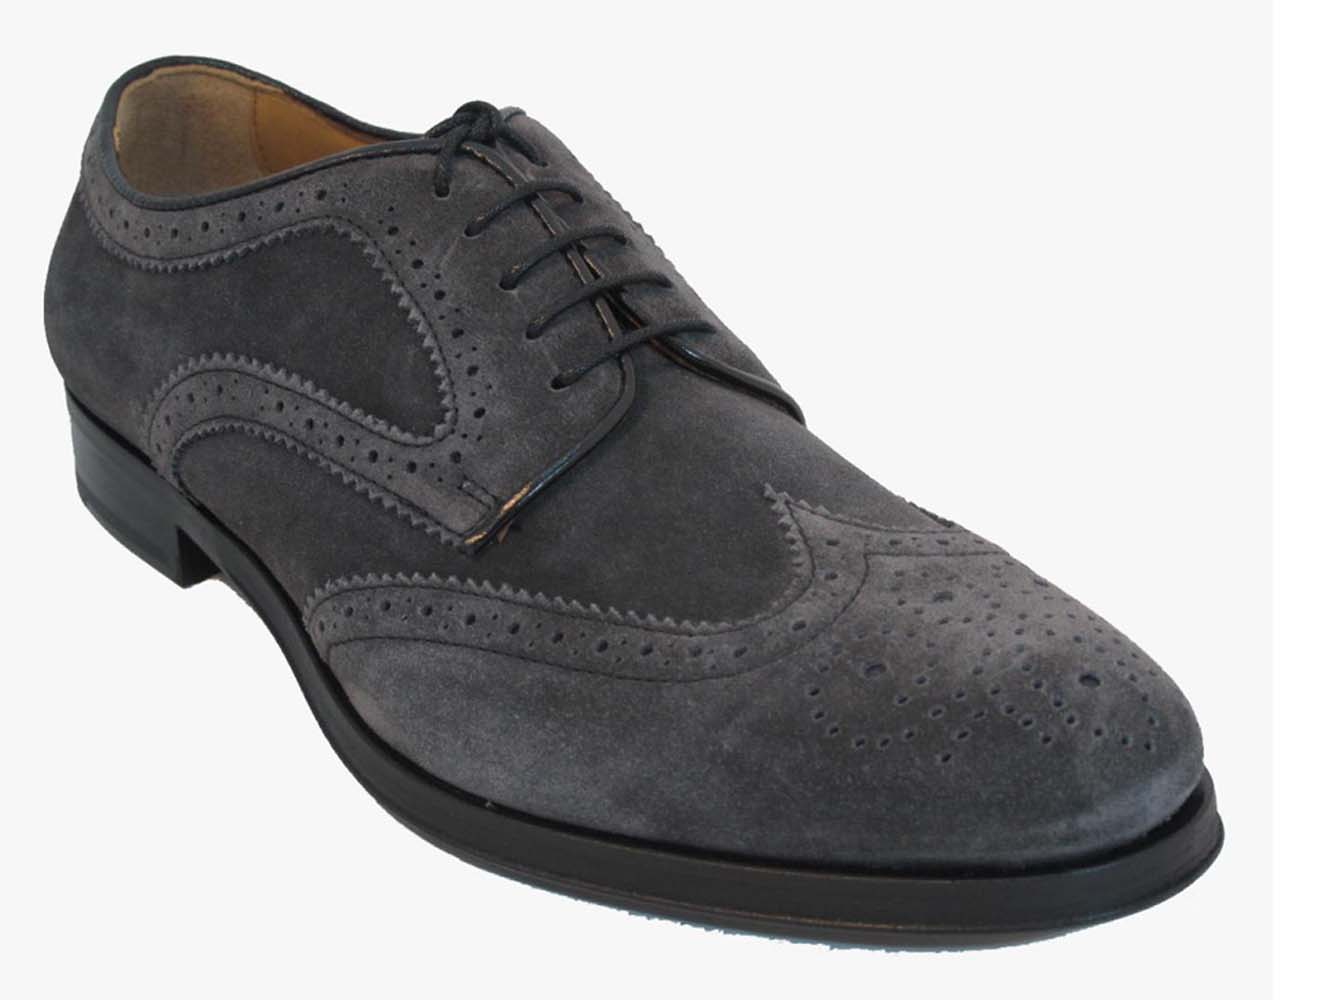 doucals-1038-oxford-lace-up-shoes-grey-main.jpg